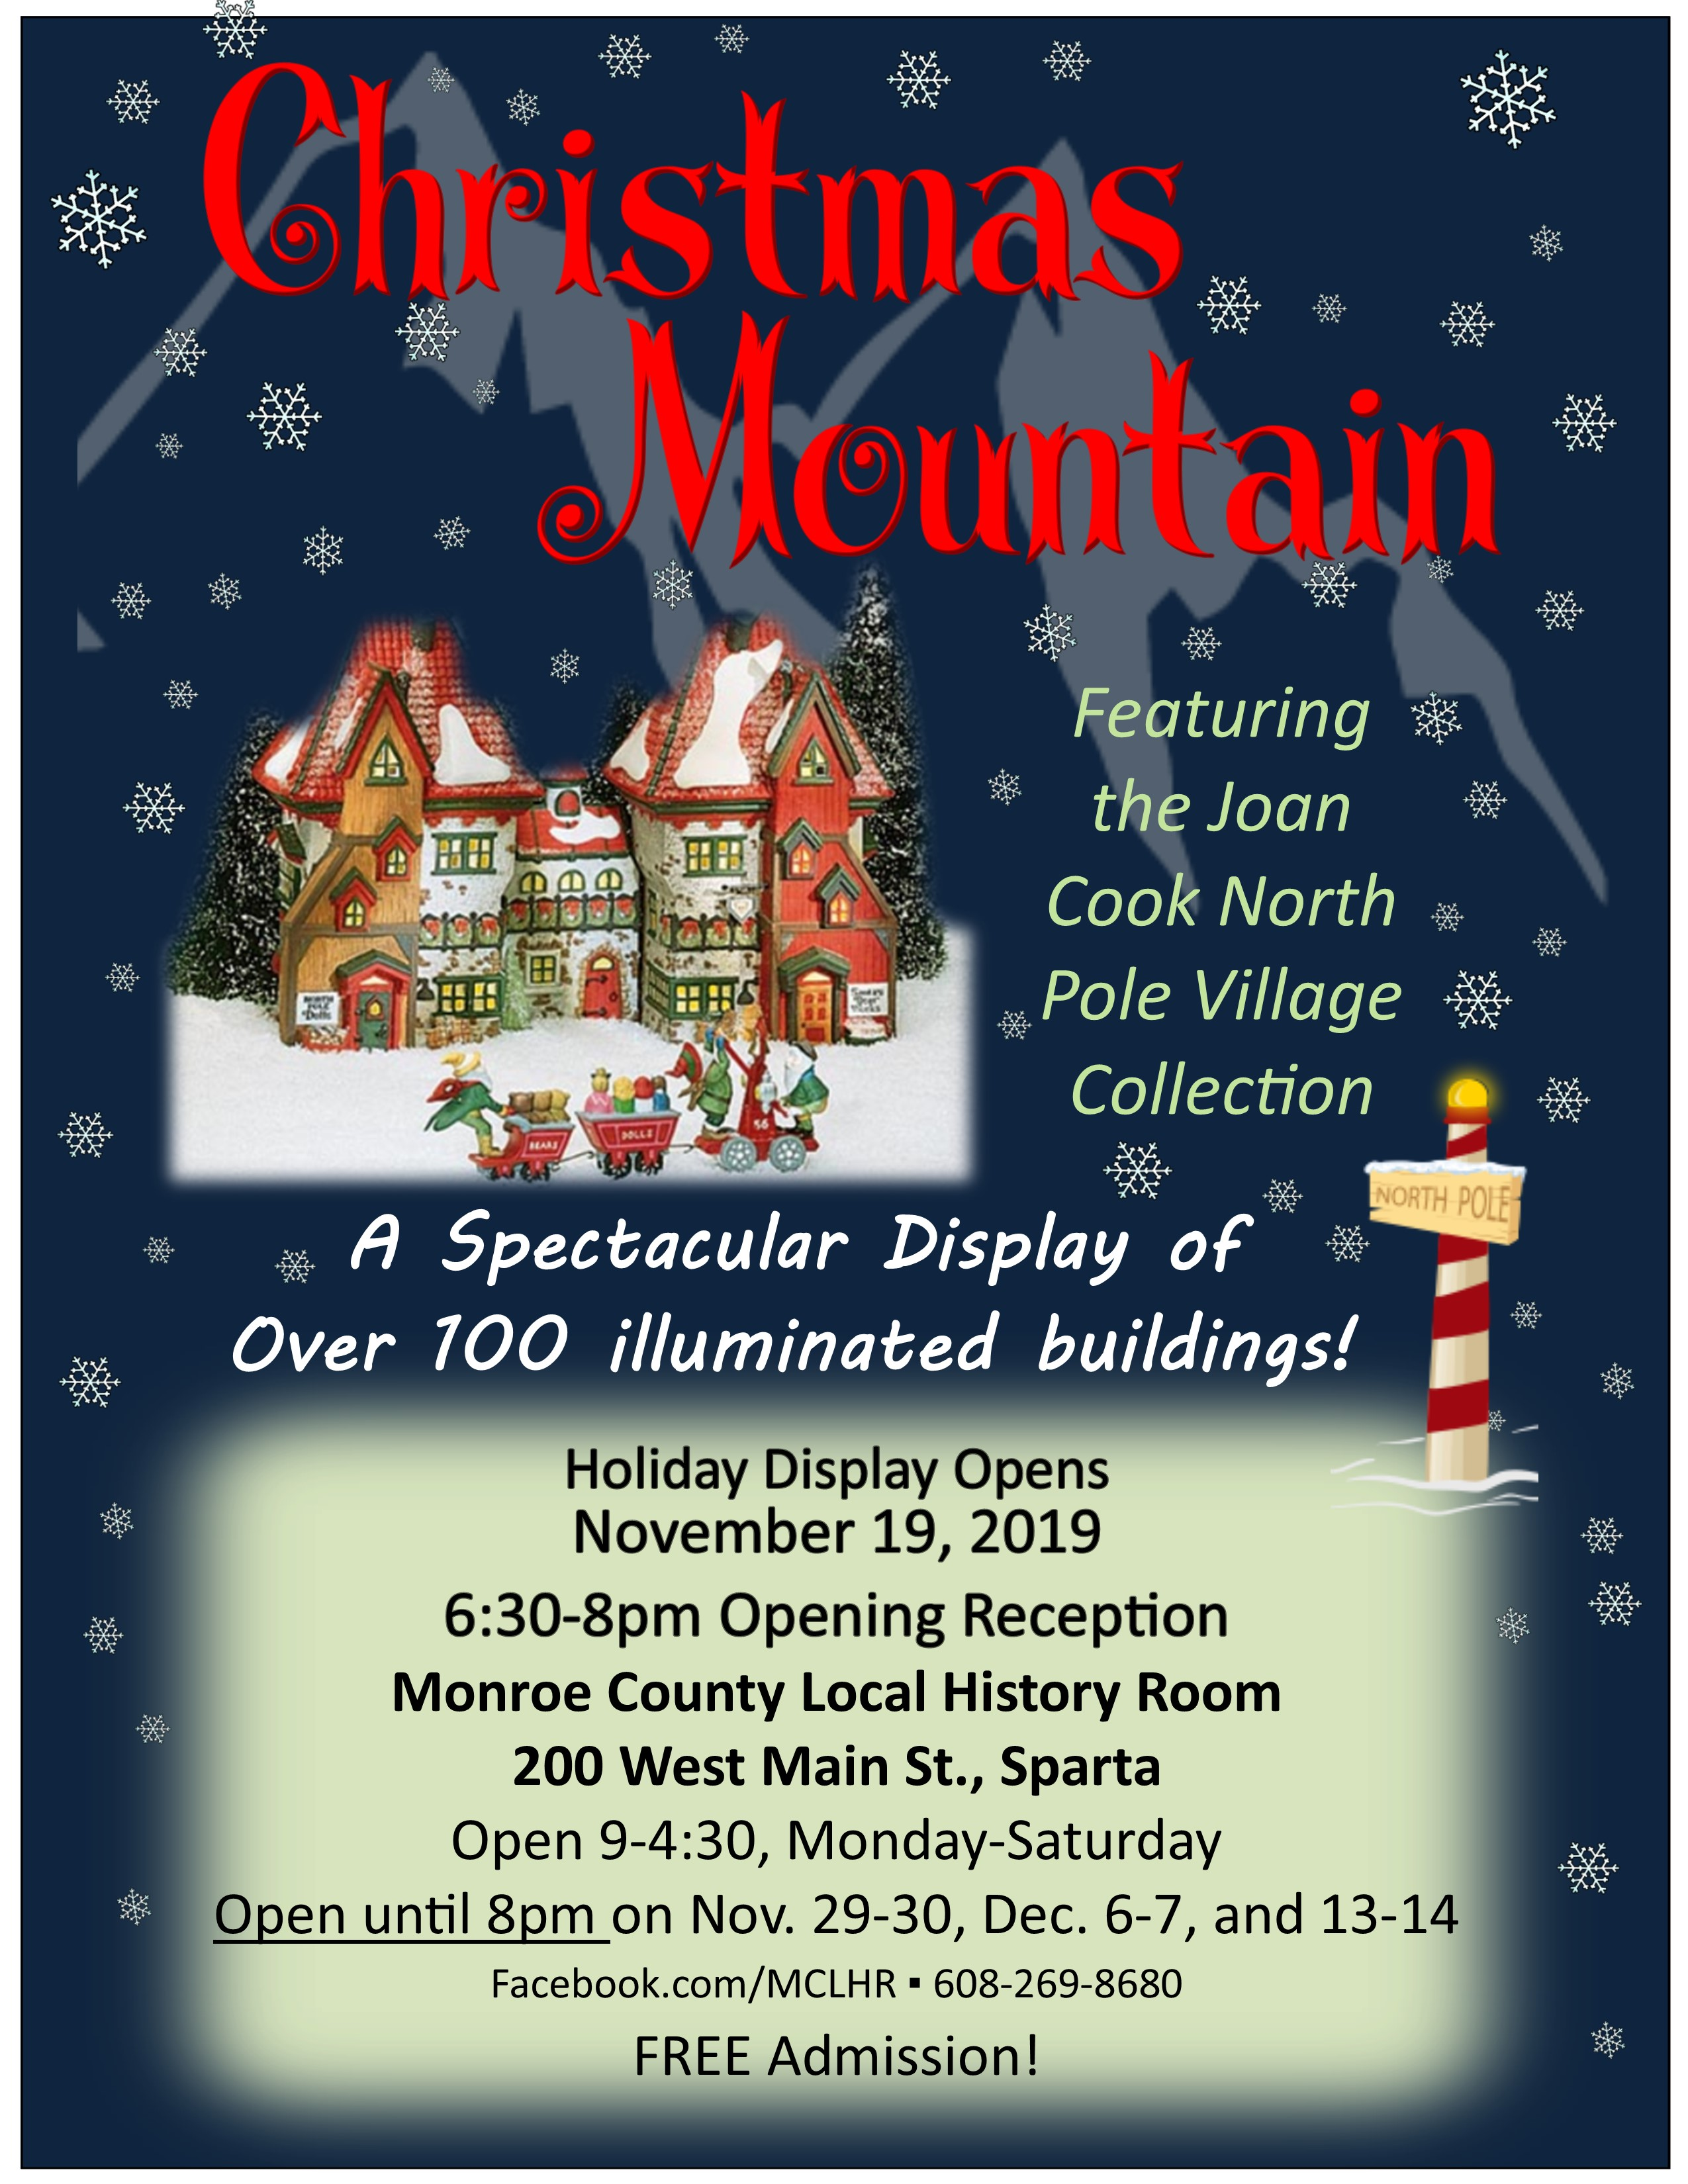 Who Won The Prizes At The 2019 Christmas In Waterford Wi November 18, 2020 Monroe County Local History Museum: The best website to research